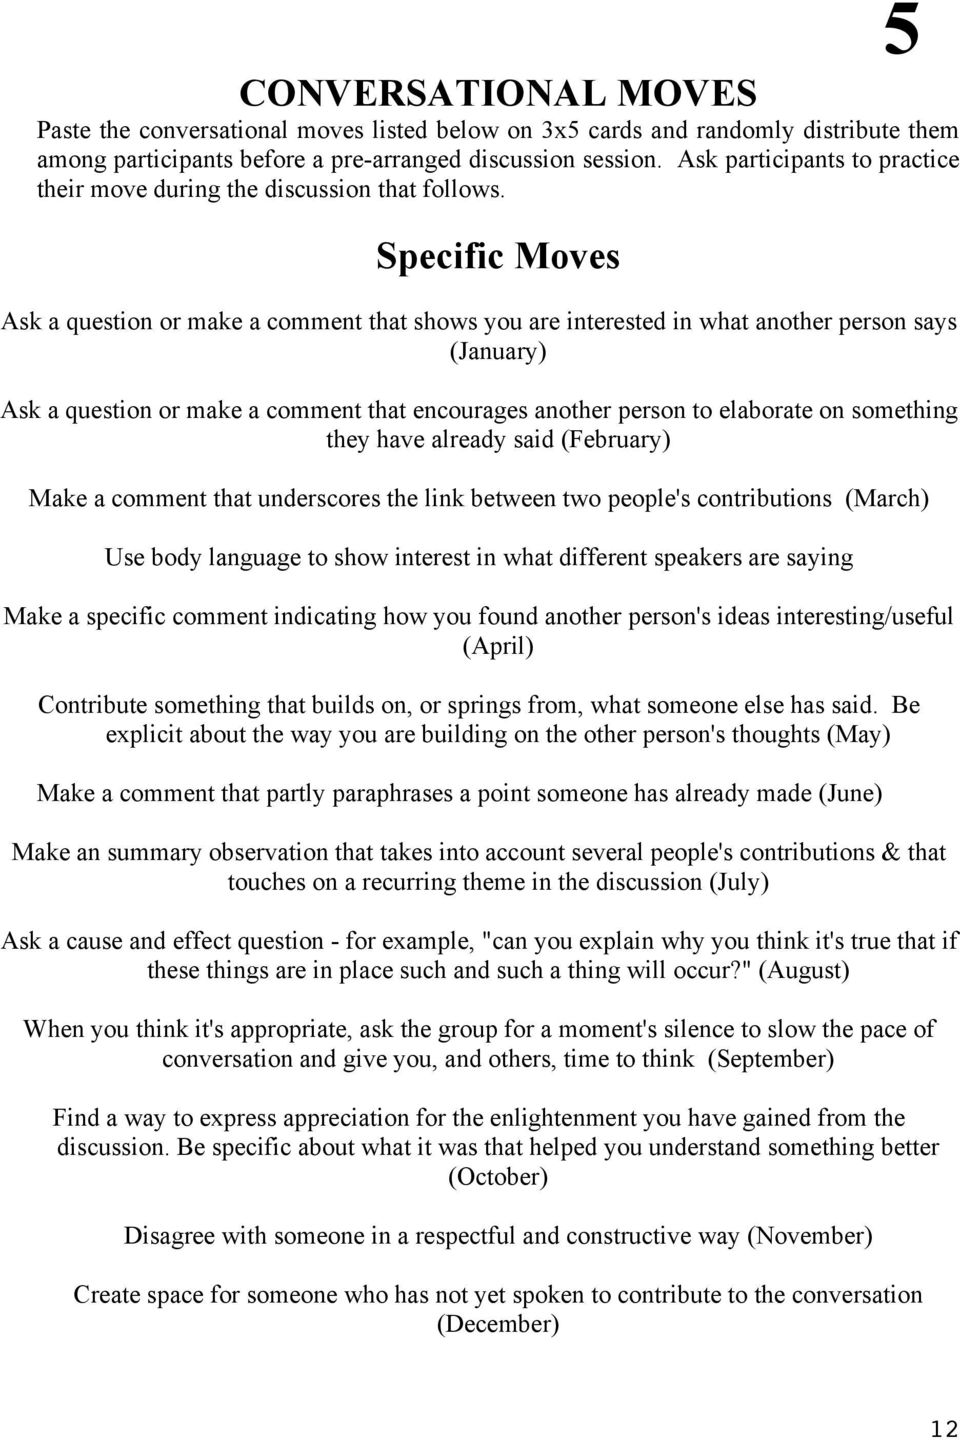 Specific Moves Ask a question or make a comment that shows you are interested in what another person says (January) Ask a question or make a comment that encourages another person to elaborate on